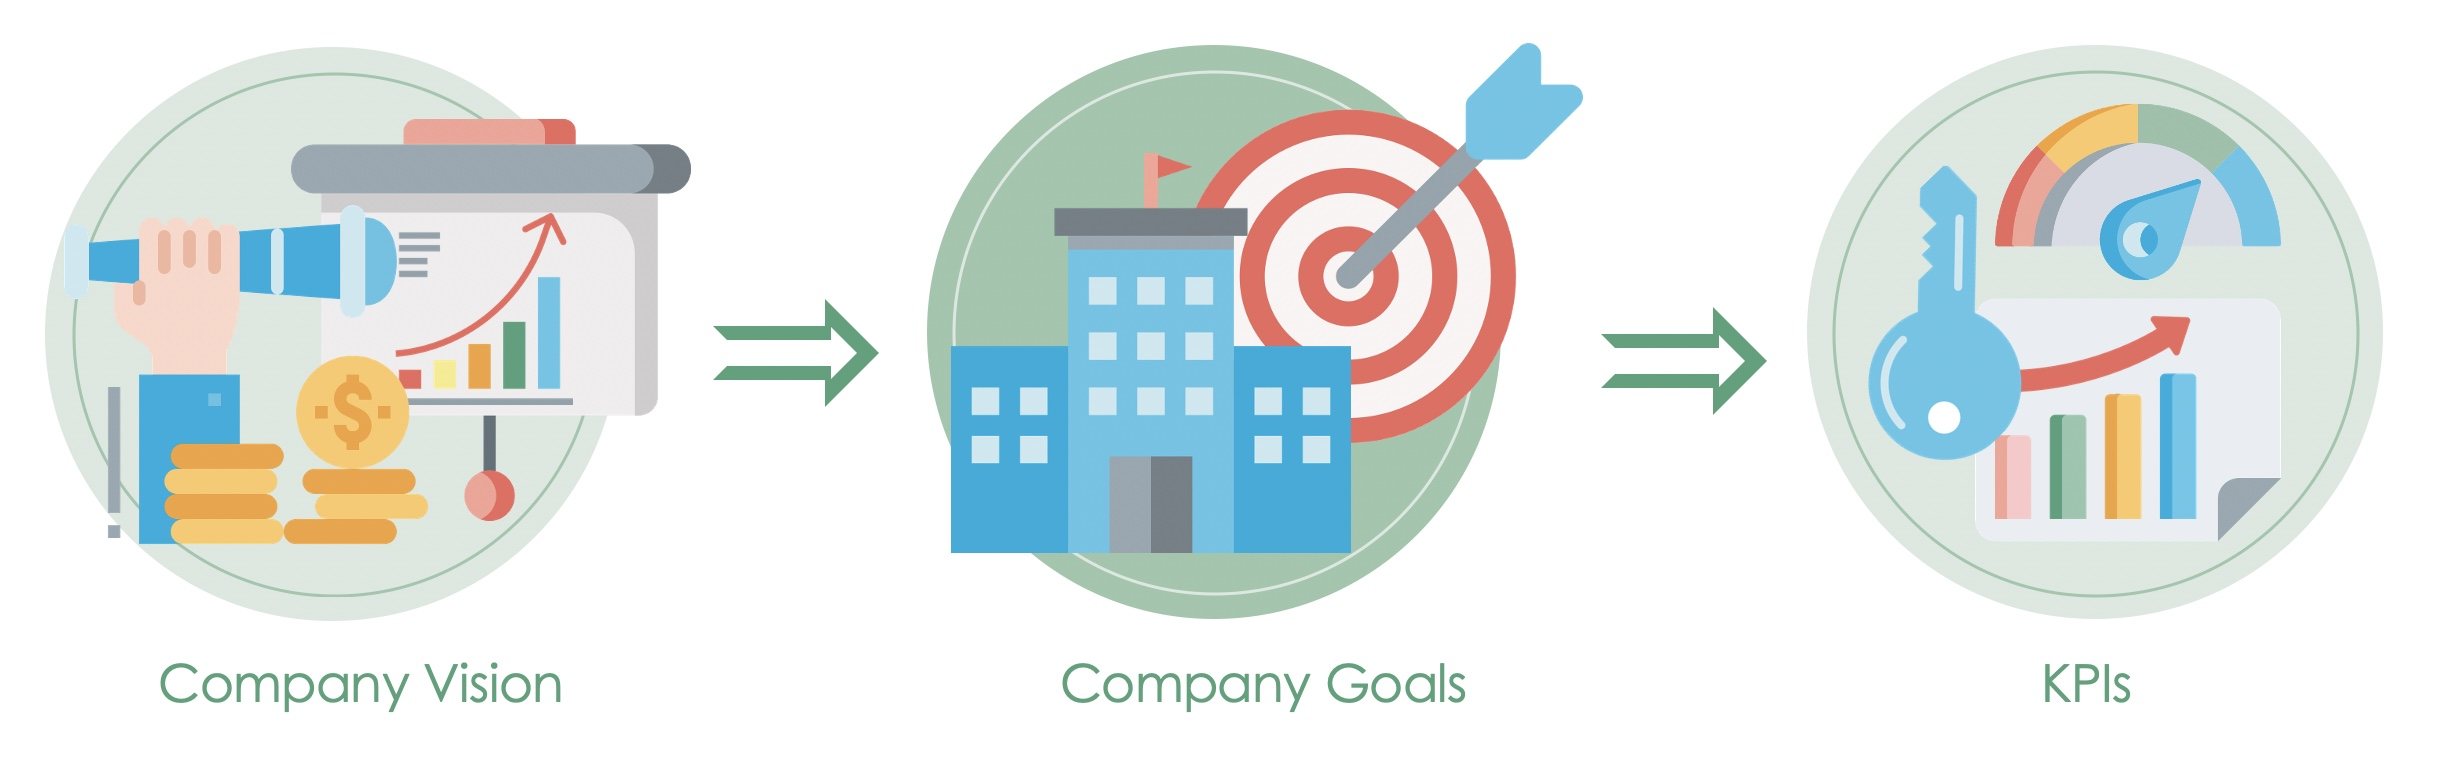 Procedure for defining KPIs in the company: You start by focusing on a corporate vision. In the next step, you derive the corporate goals from this vision, which in turn help you to formulate your KPIs.